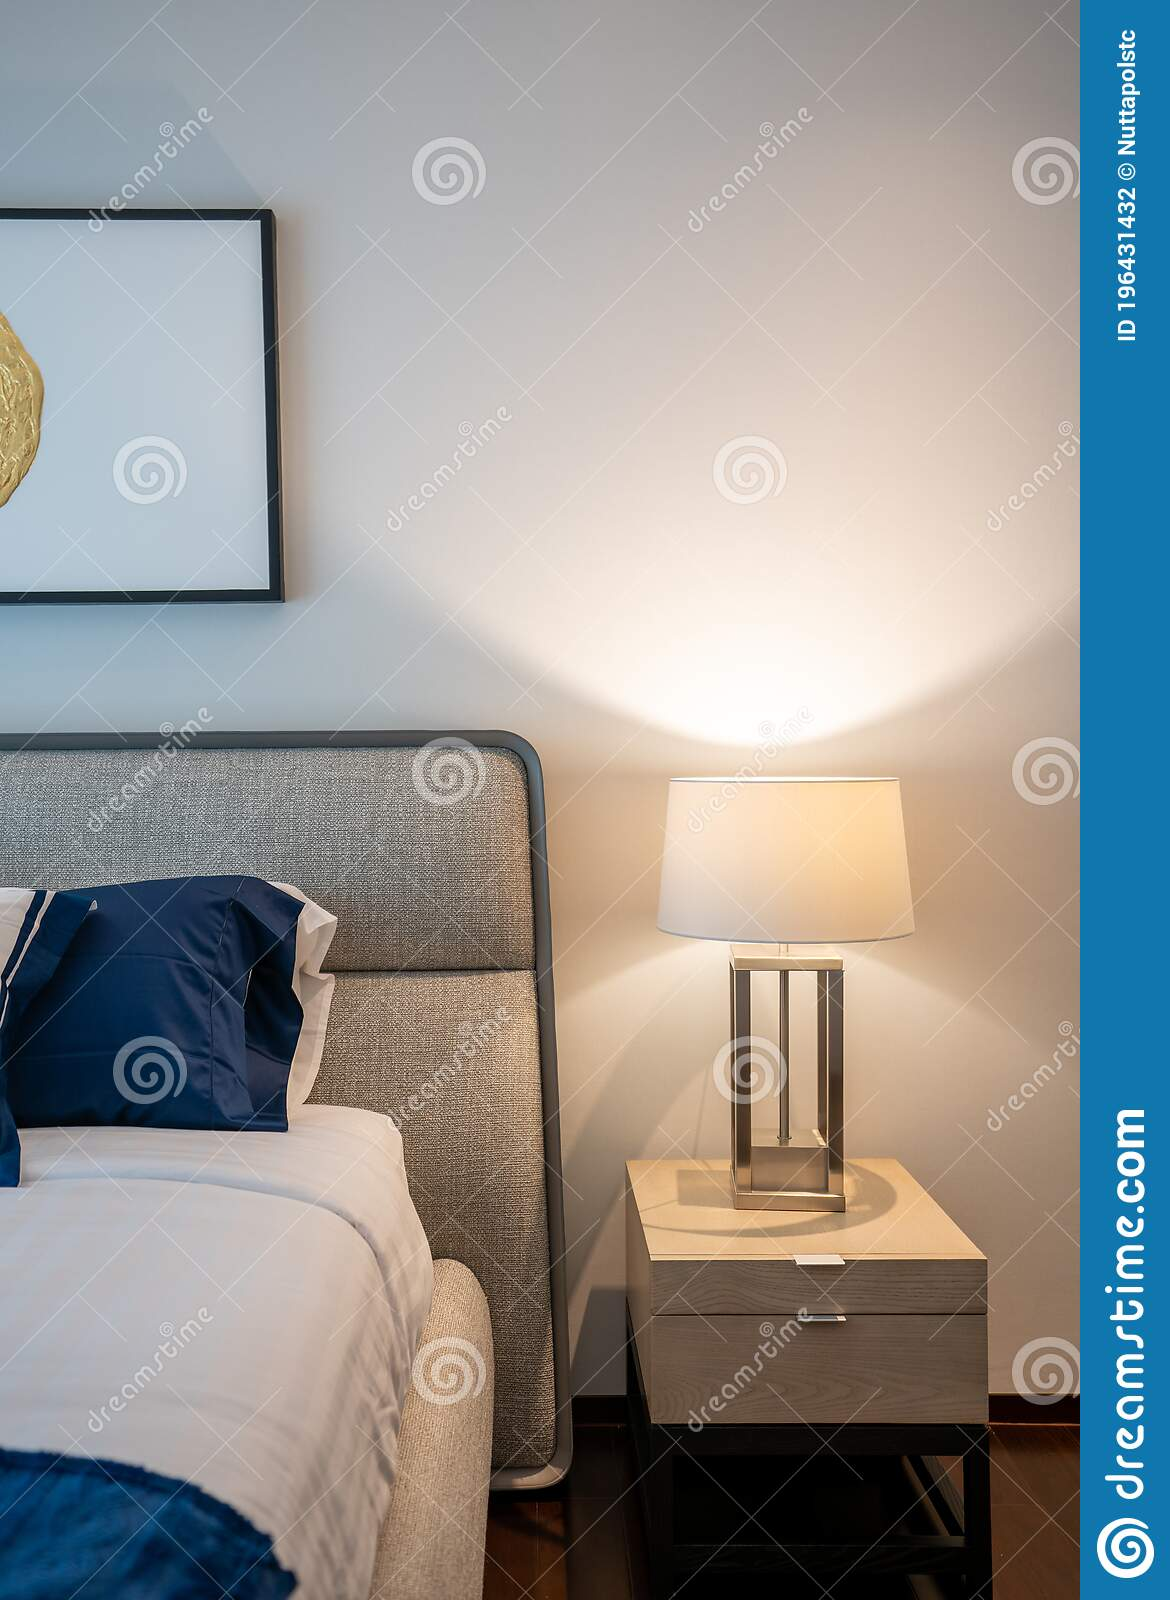 Stylish Bedroom Corner With Gray Fabric Headboard And Bed With Soft Pillows Setting With Navy Blue And White Painted Wall On The Stock Photo Image Of Metal Decor 196431432